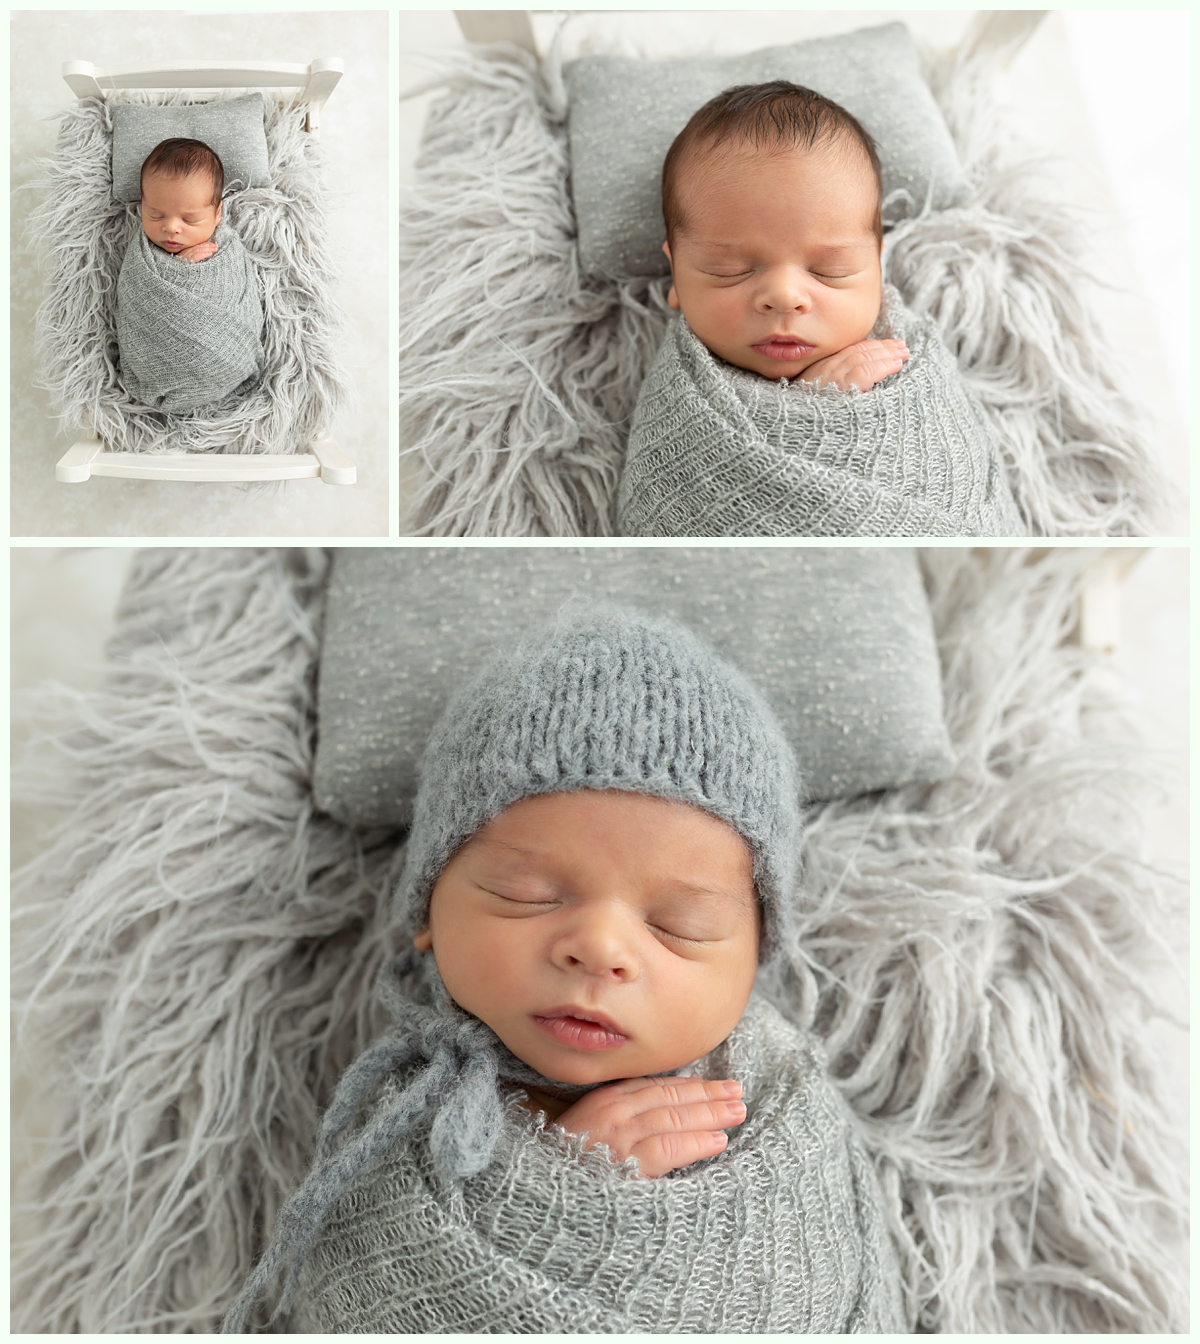 newborn boy in gray bonnet and swaddle